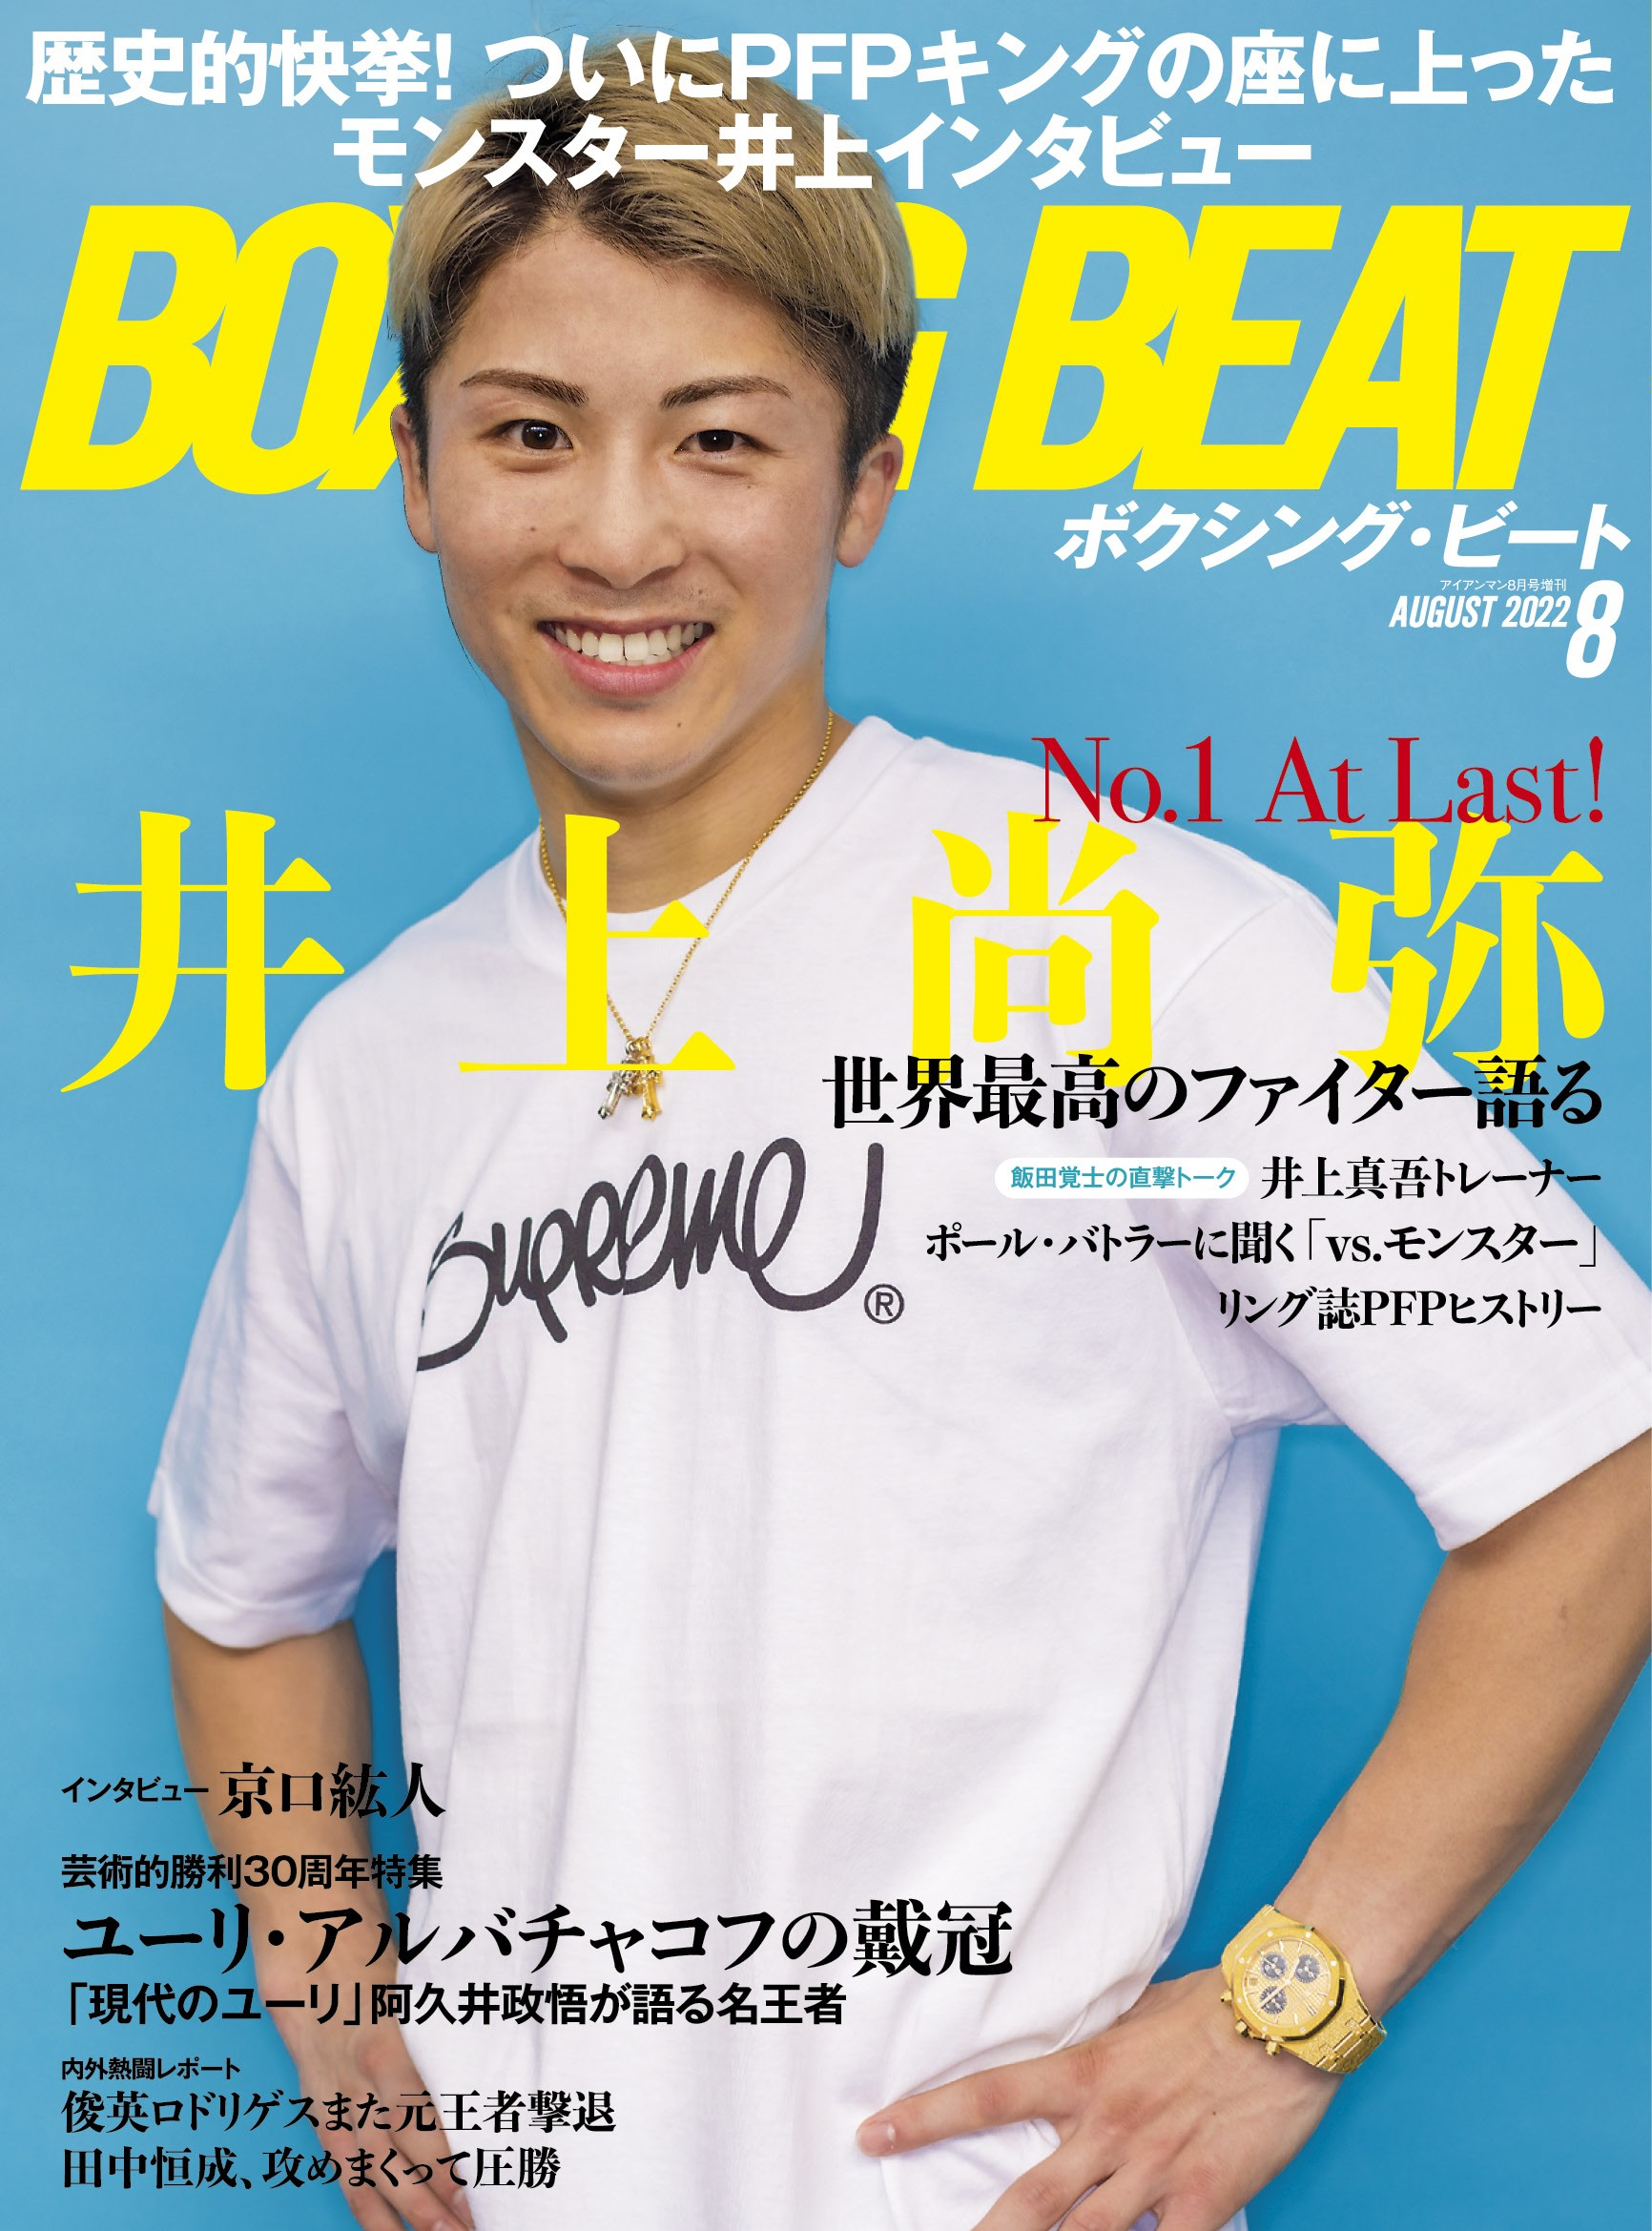 BOXING BEAT 2017年3月号